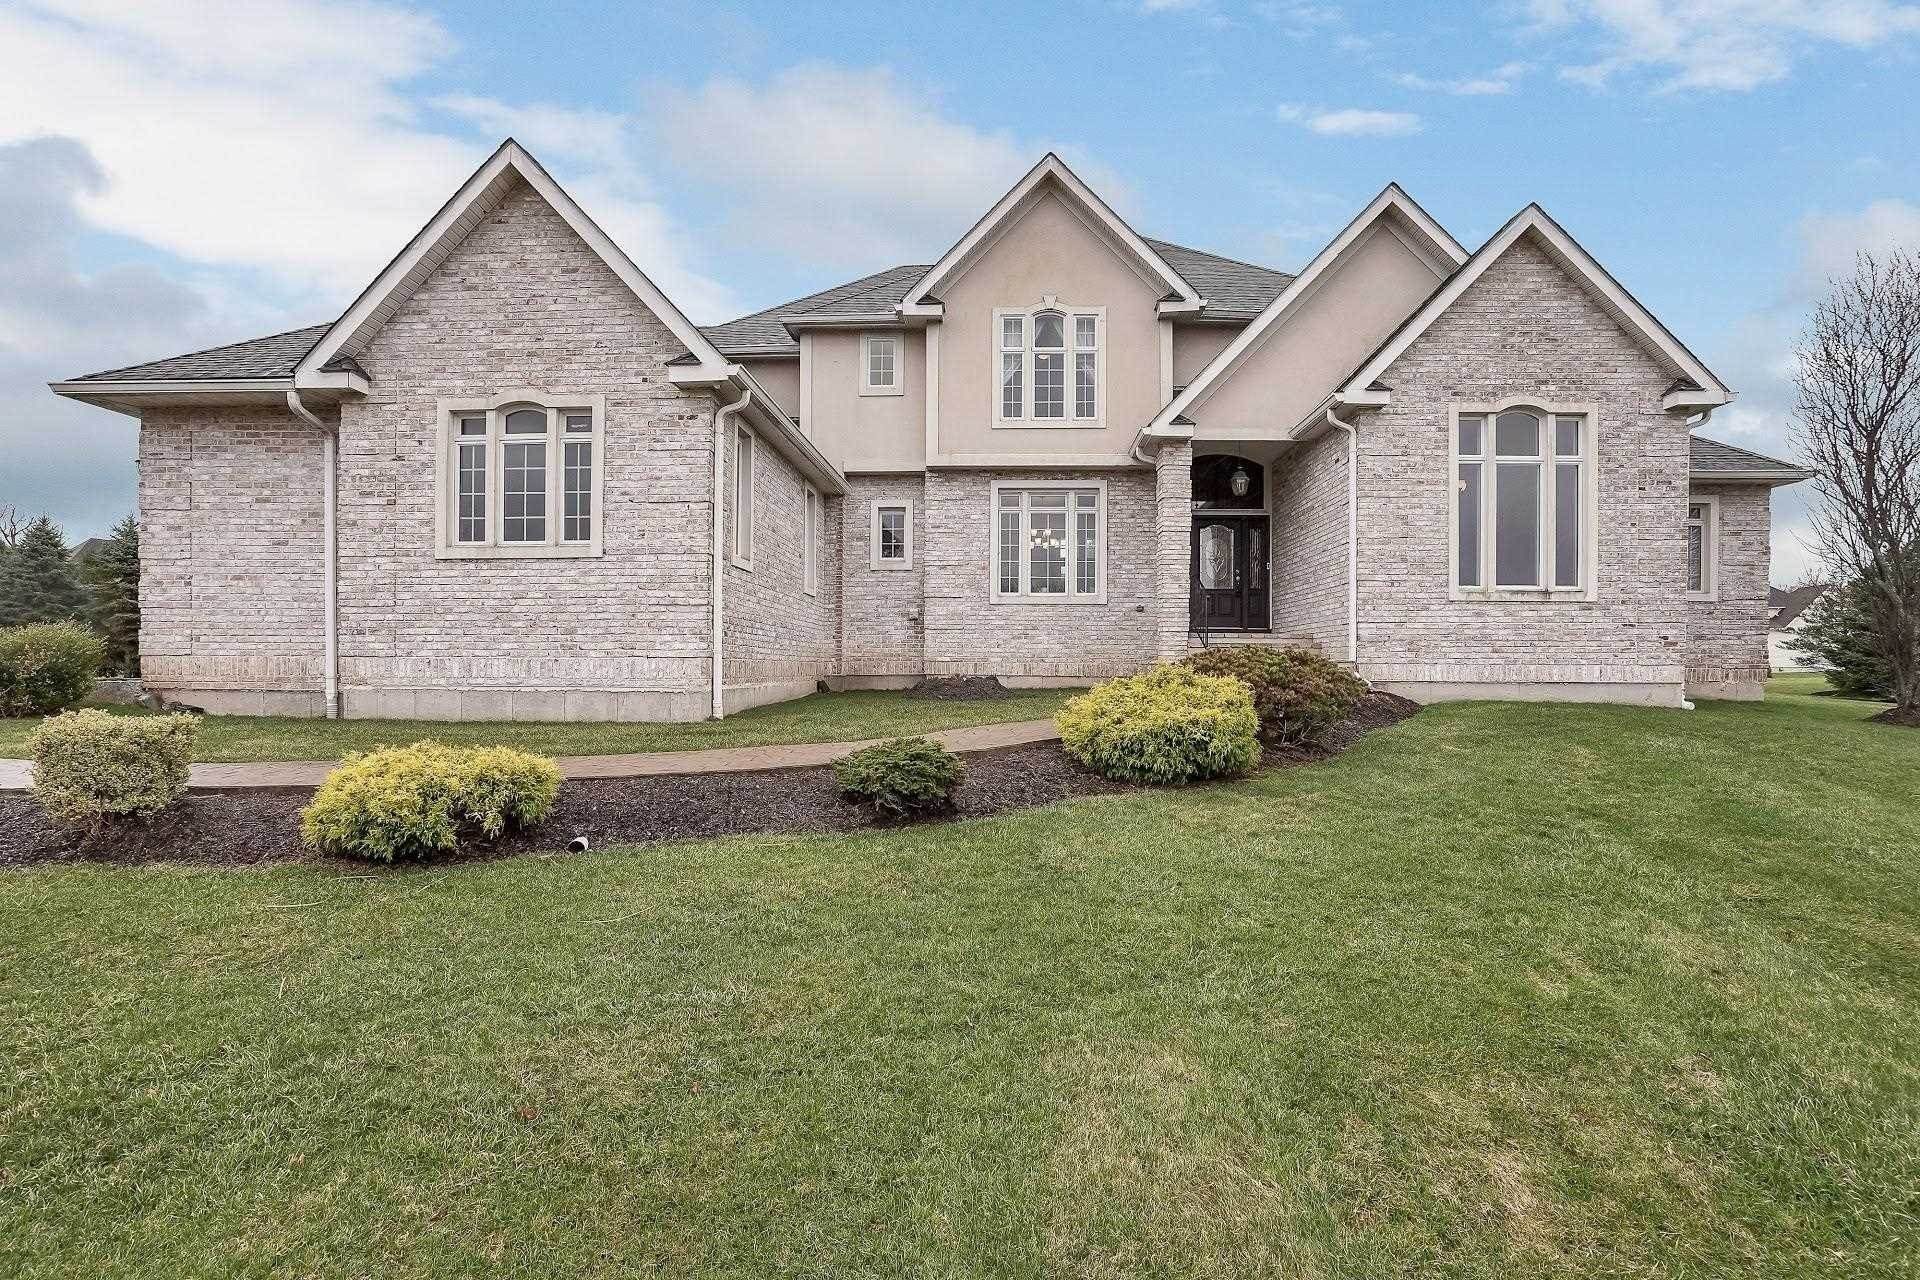 Single Family Homes for Sale at 56 AUTUMN CHASE Drive East Fishkill, New York 12533 United States